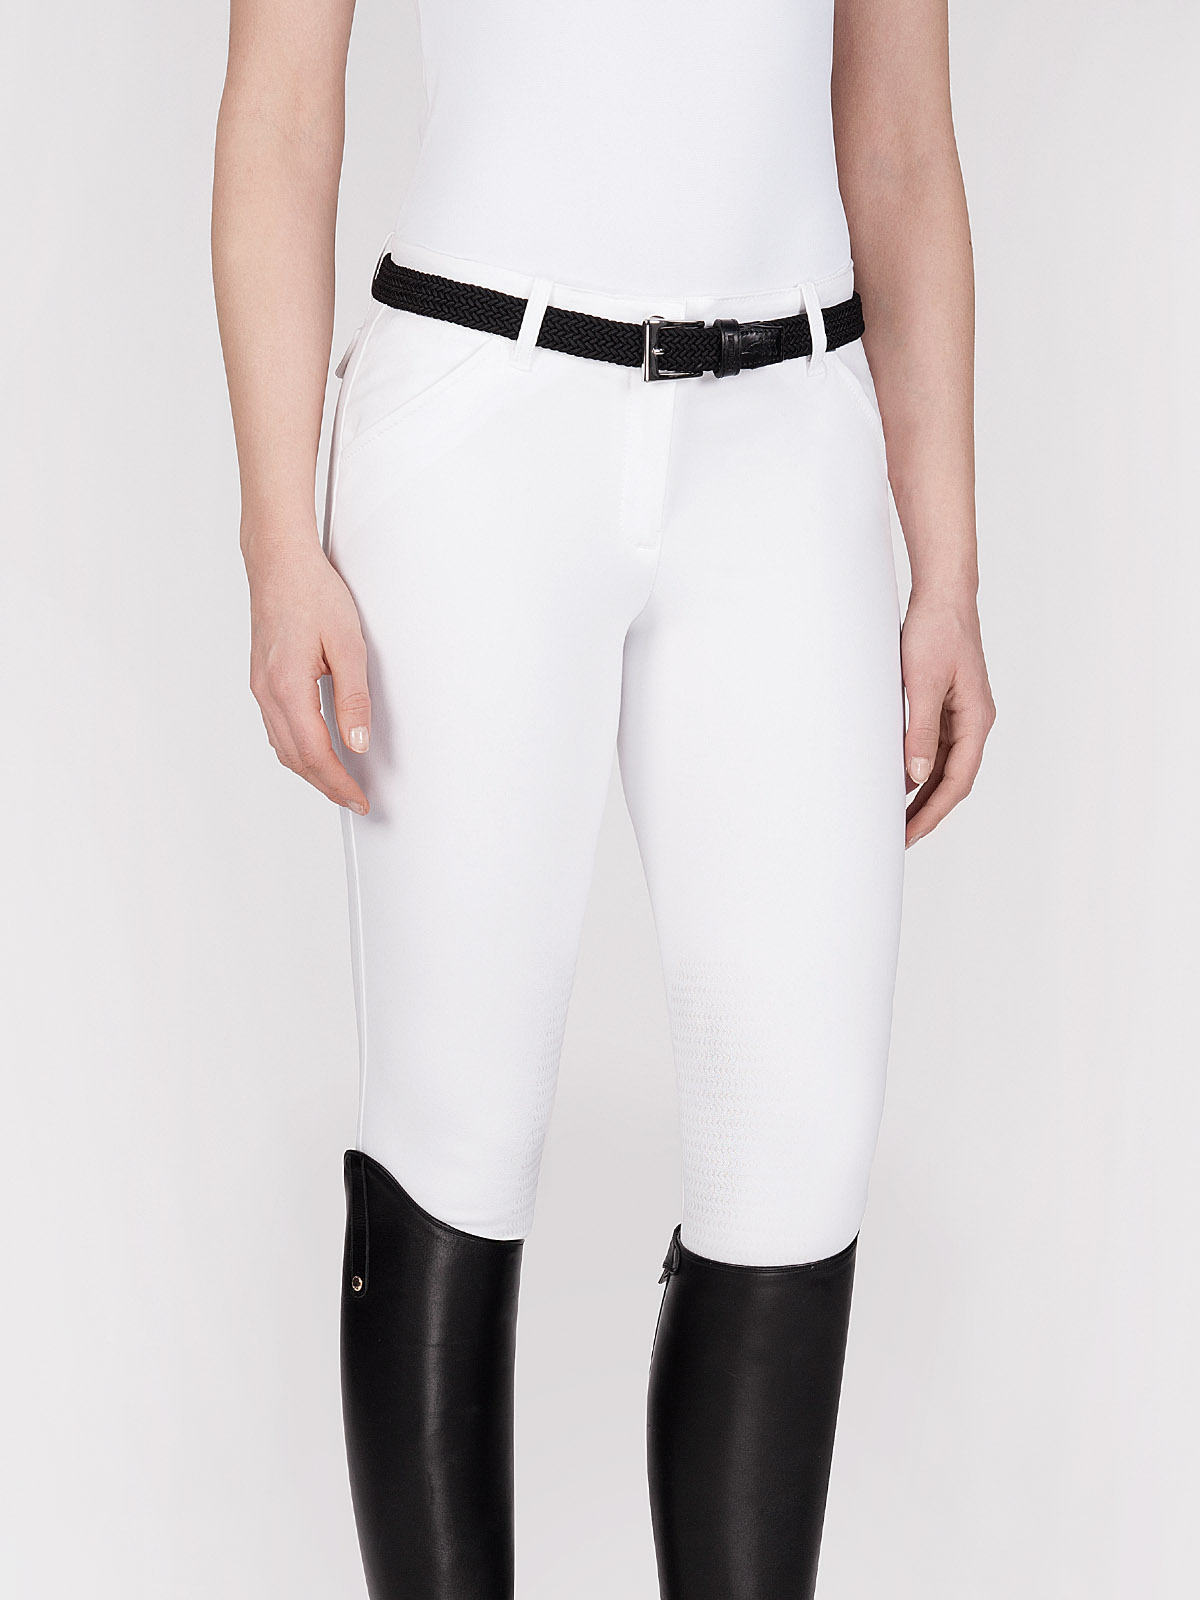 BICE- Women's Equitation Breeches with Knee Grip 3